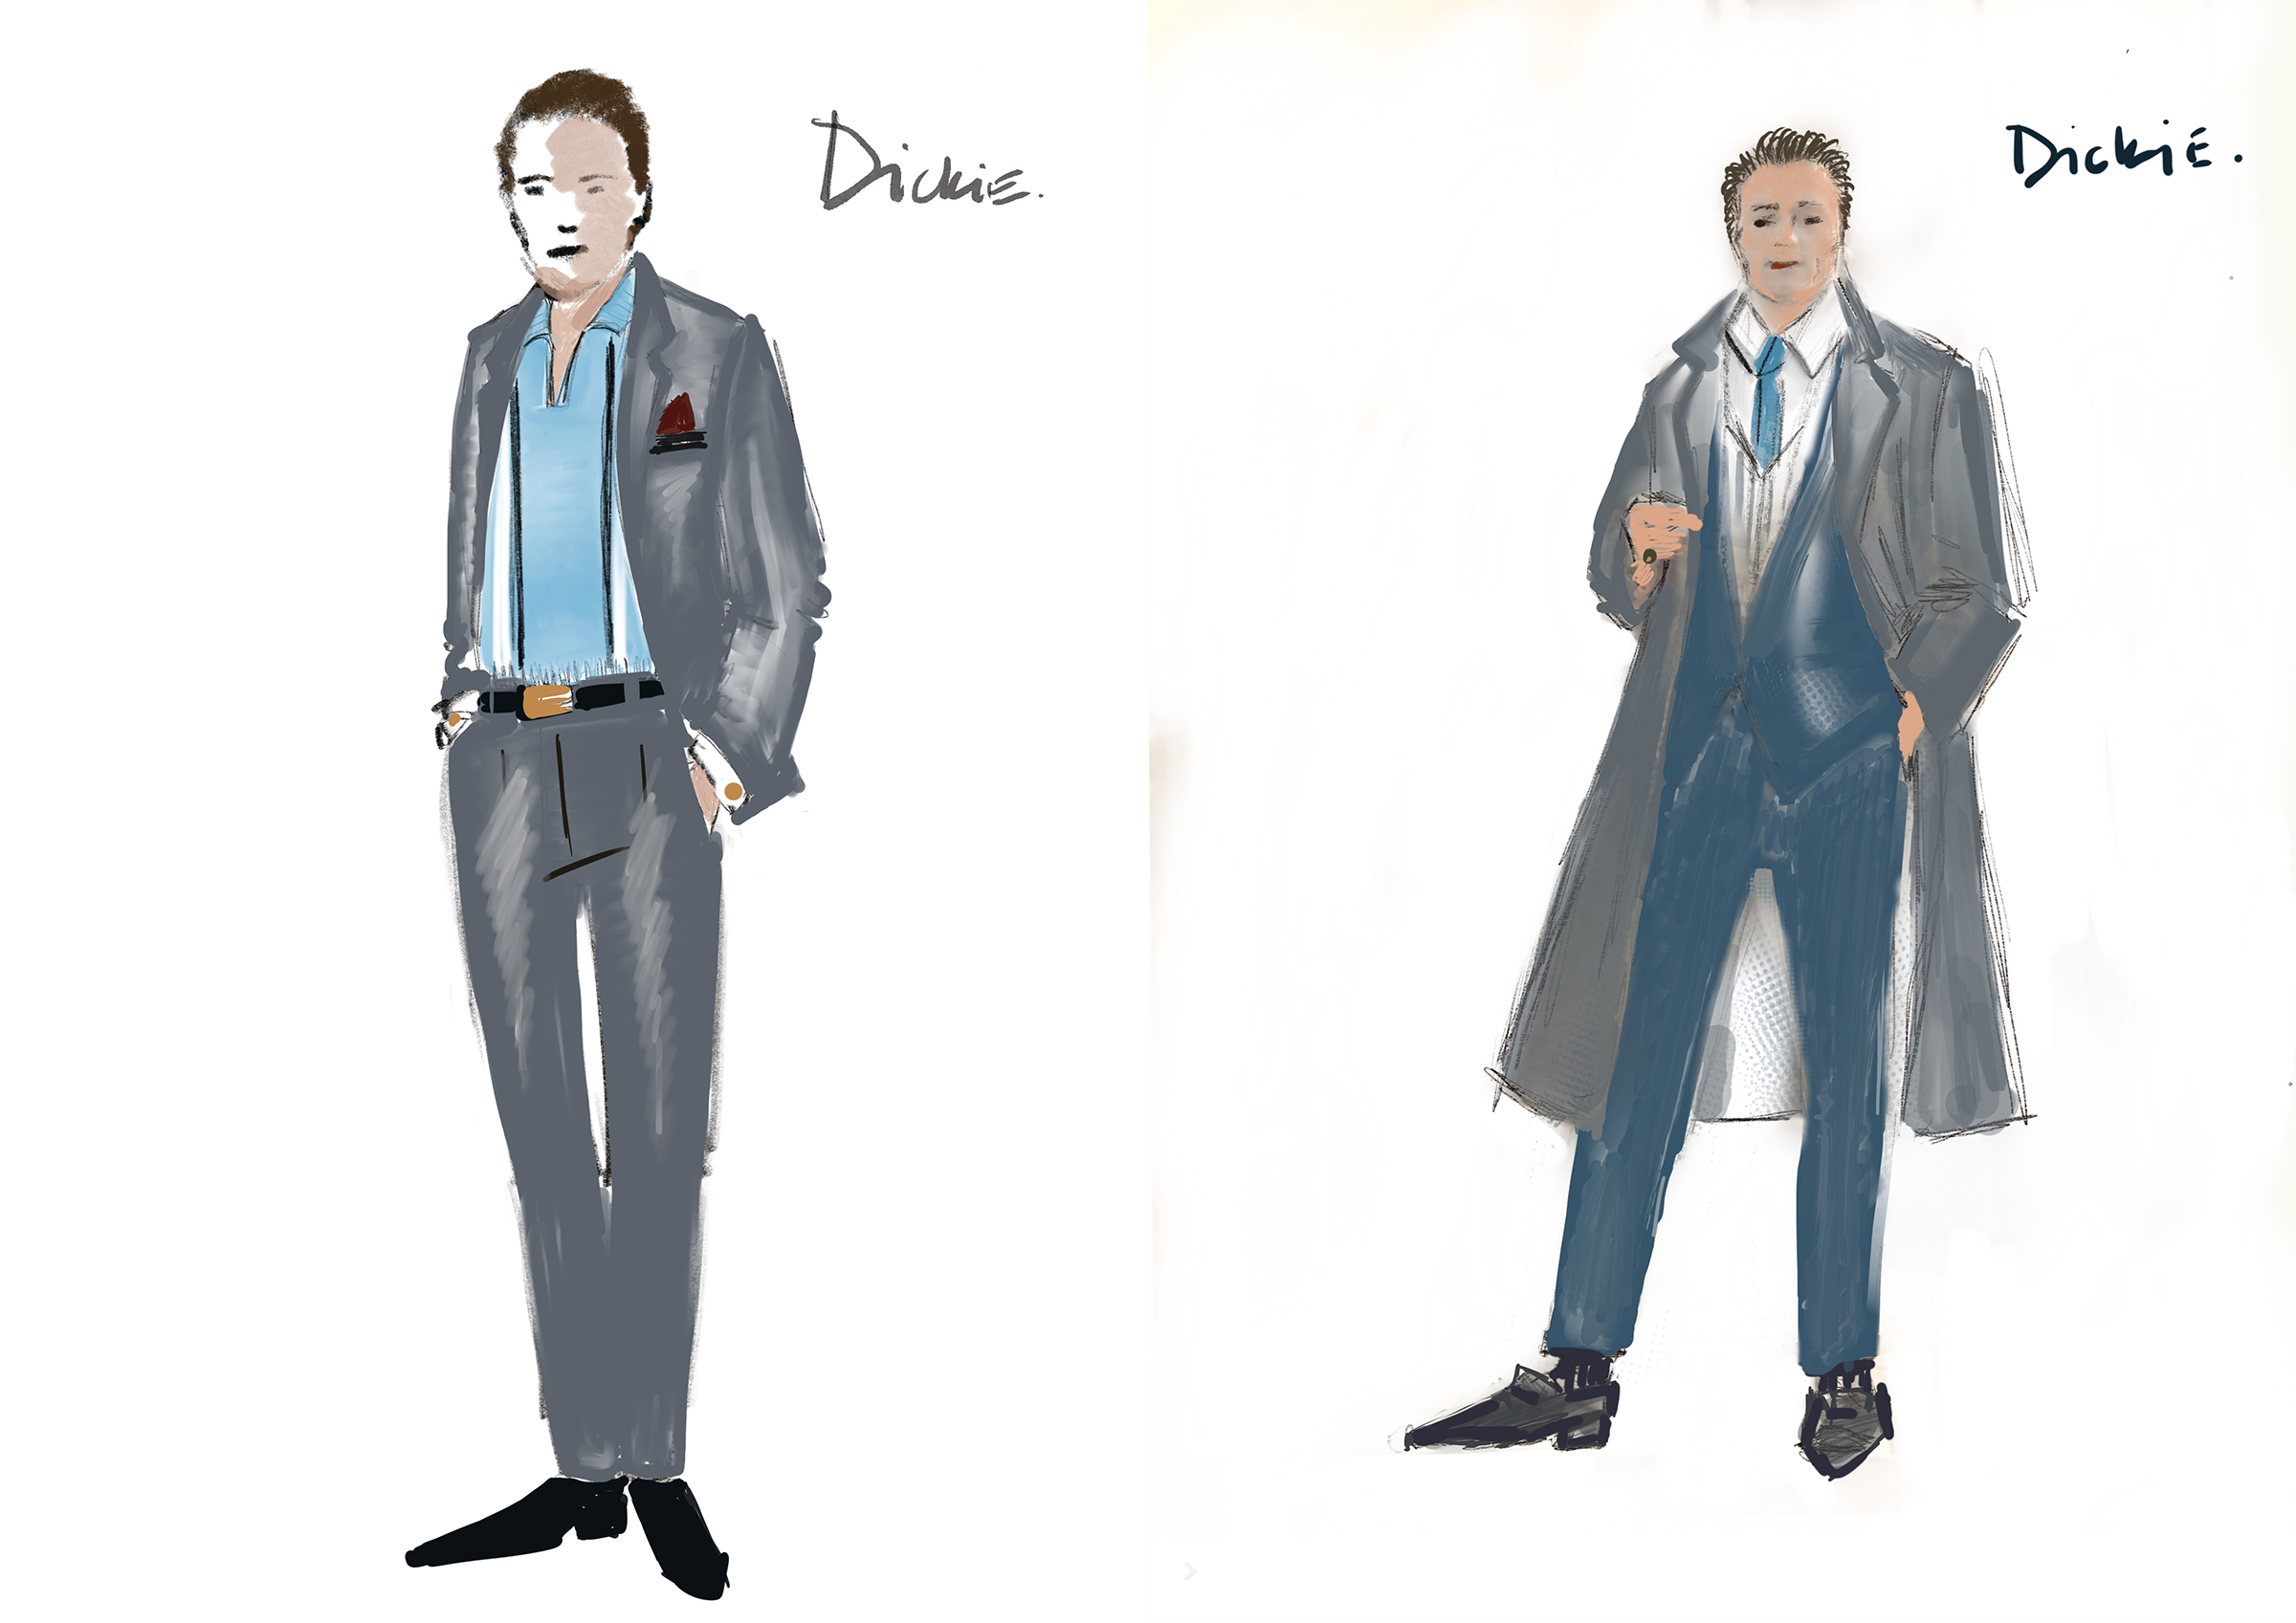 Sketches of Dickie Moltisanti